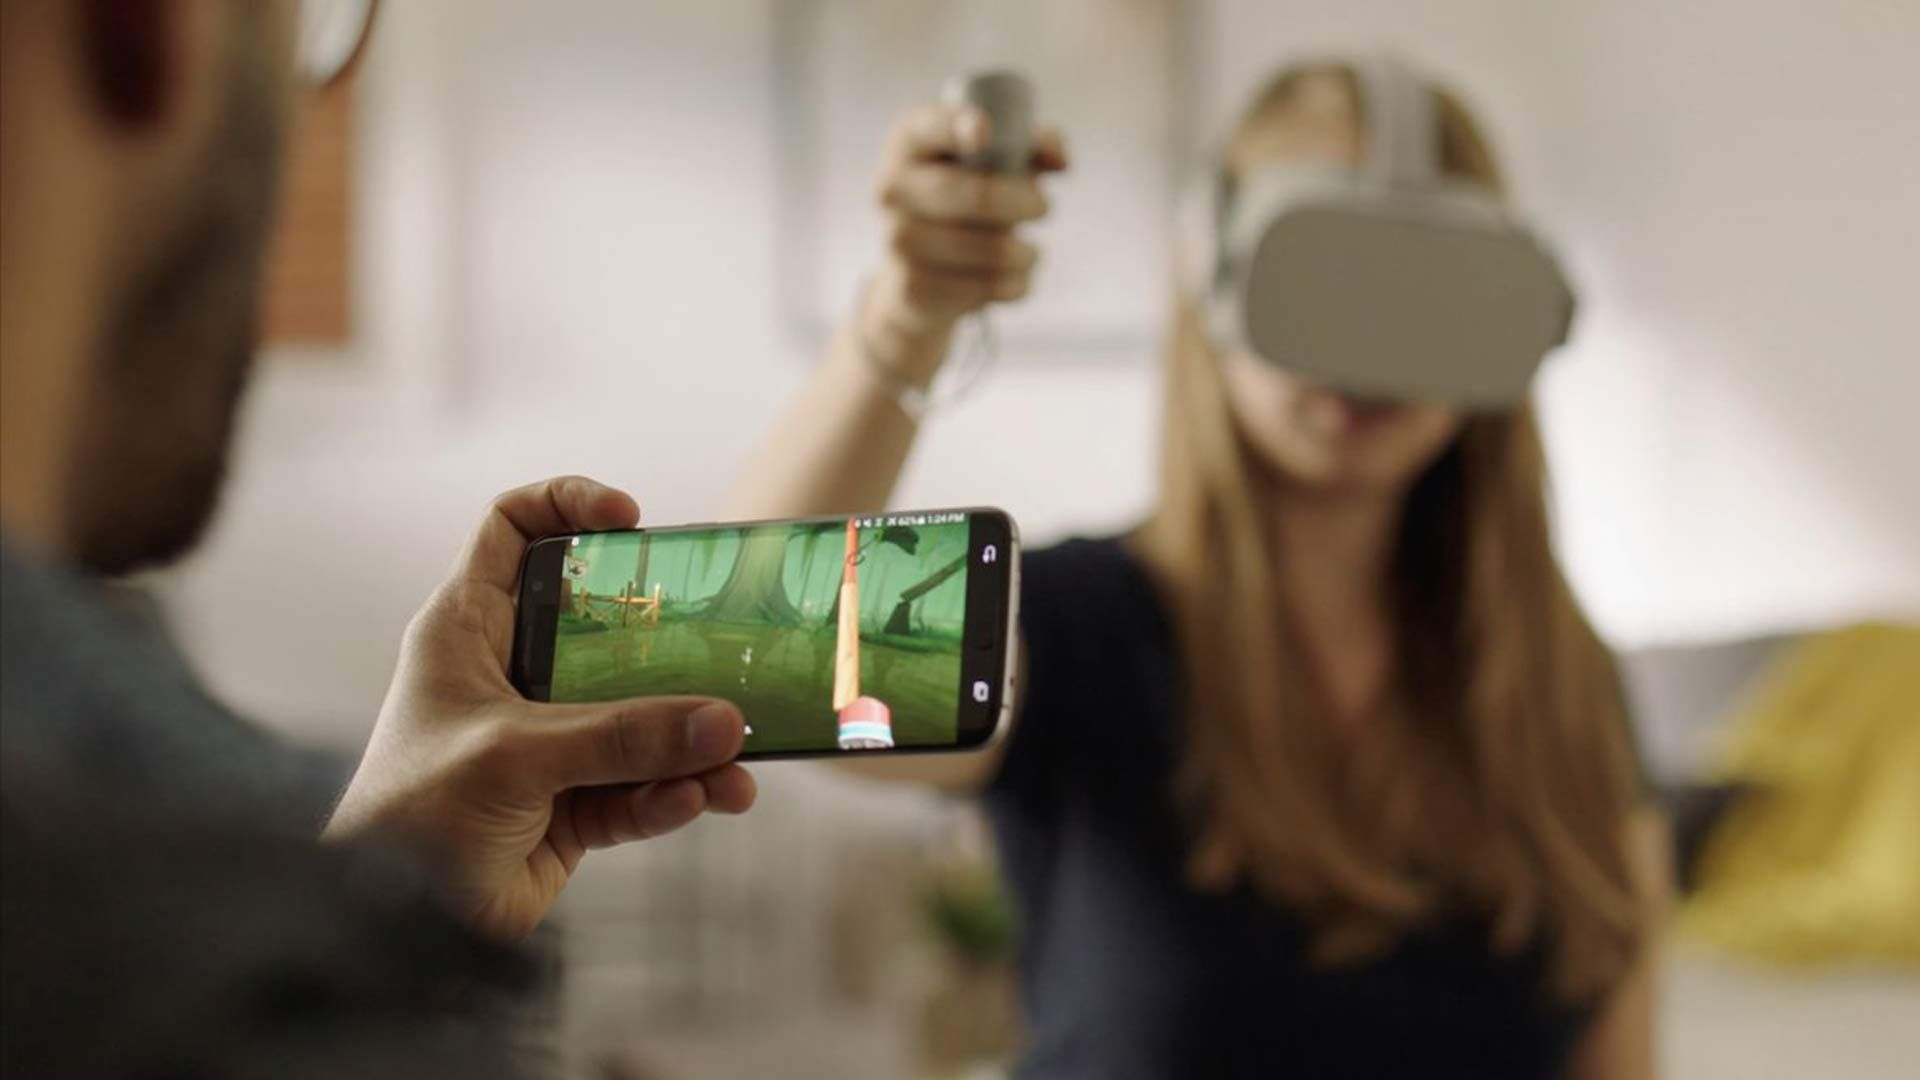 Oculus released screencasting in beta late last year, and